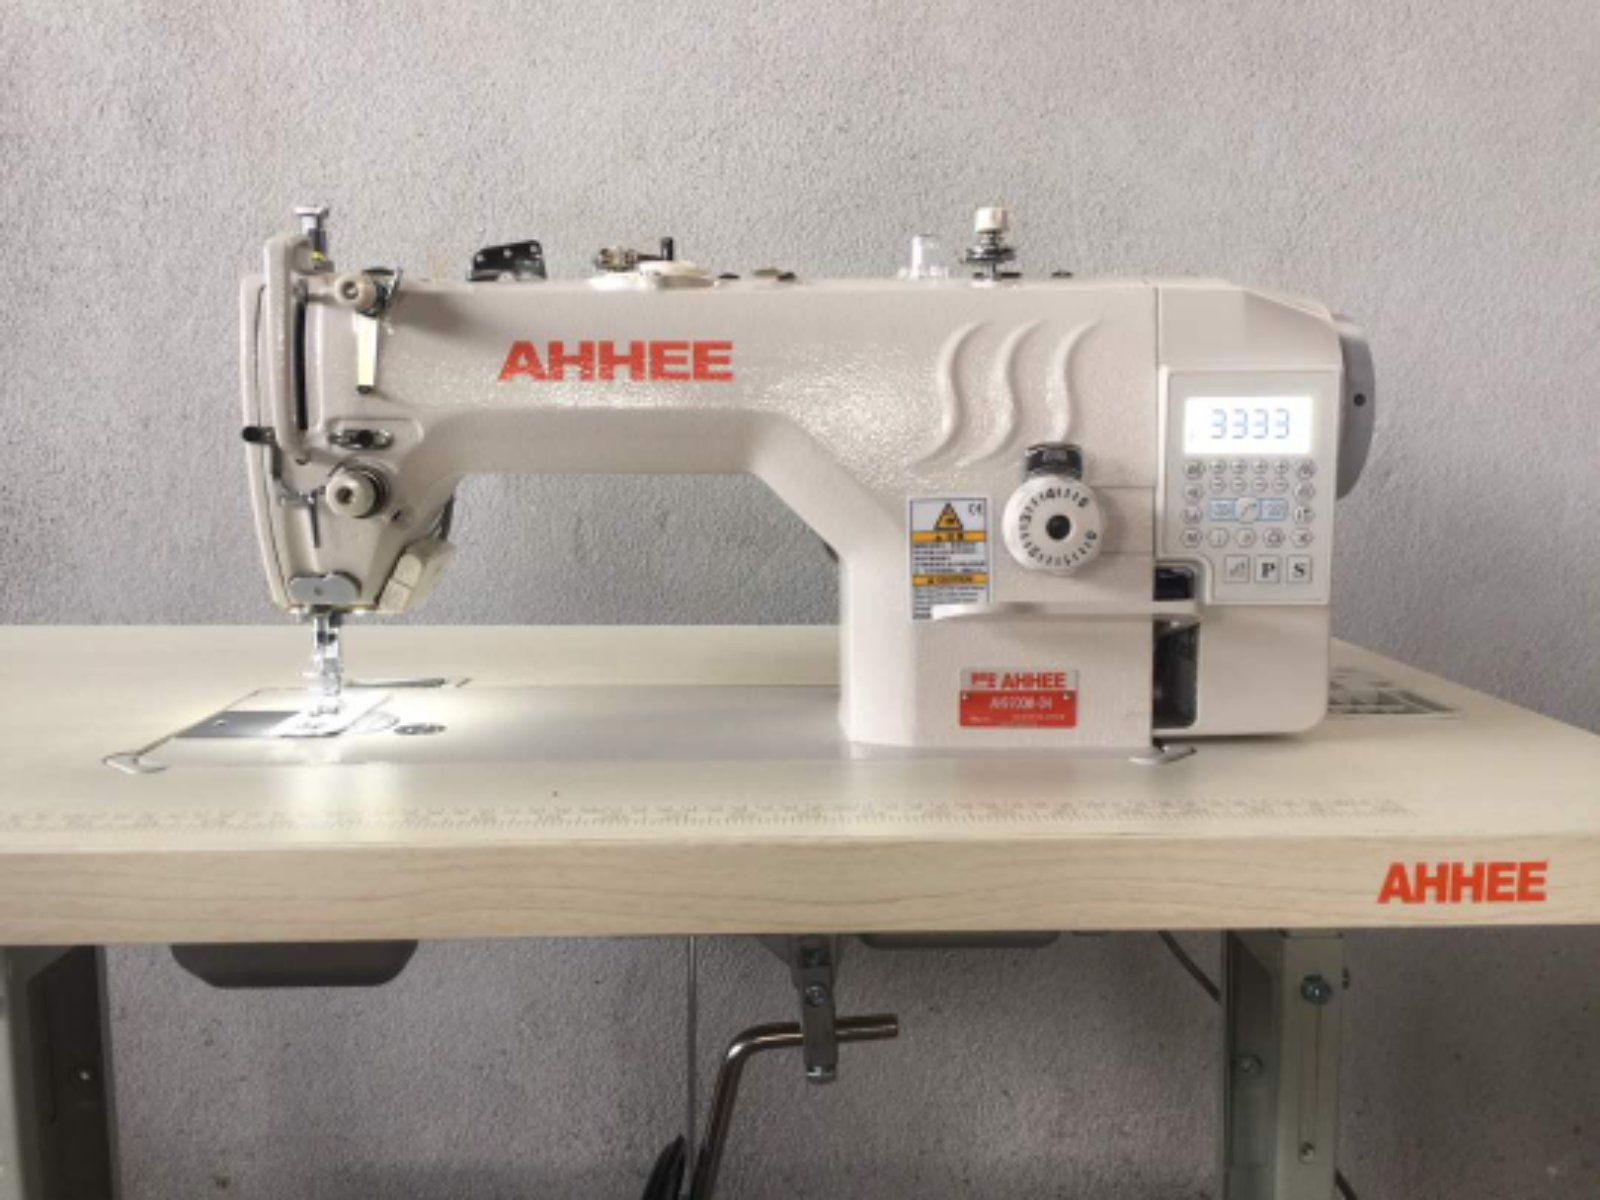 AHHEE hi speed sewing machine